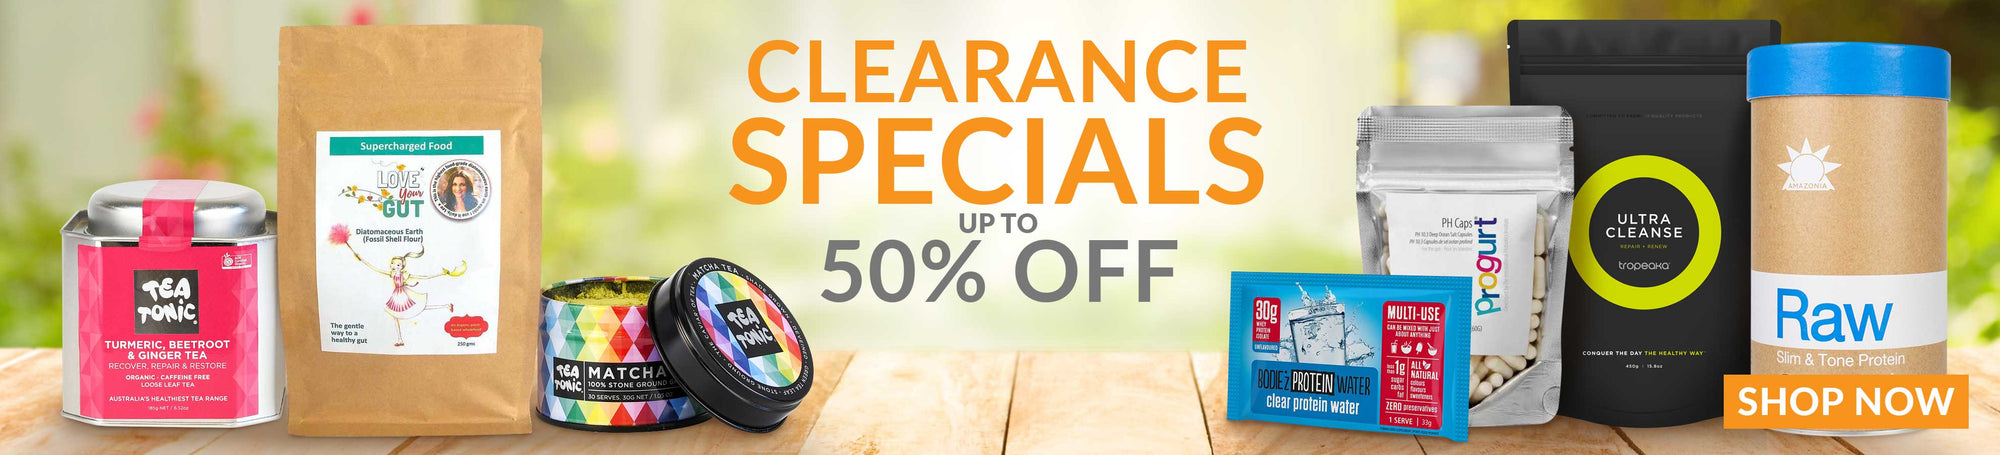 Amazing discounts on beautiful clearance sale items.